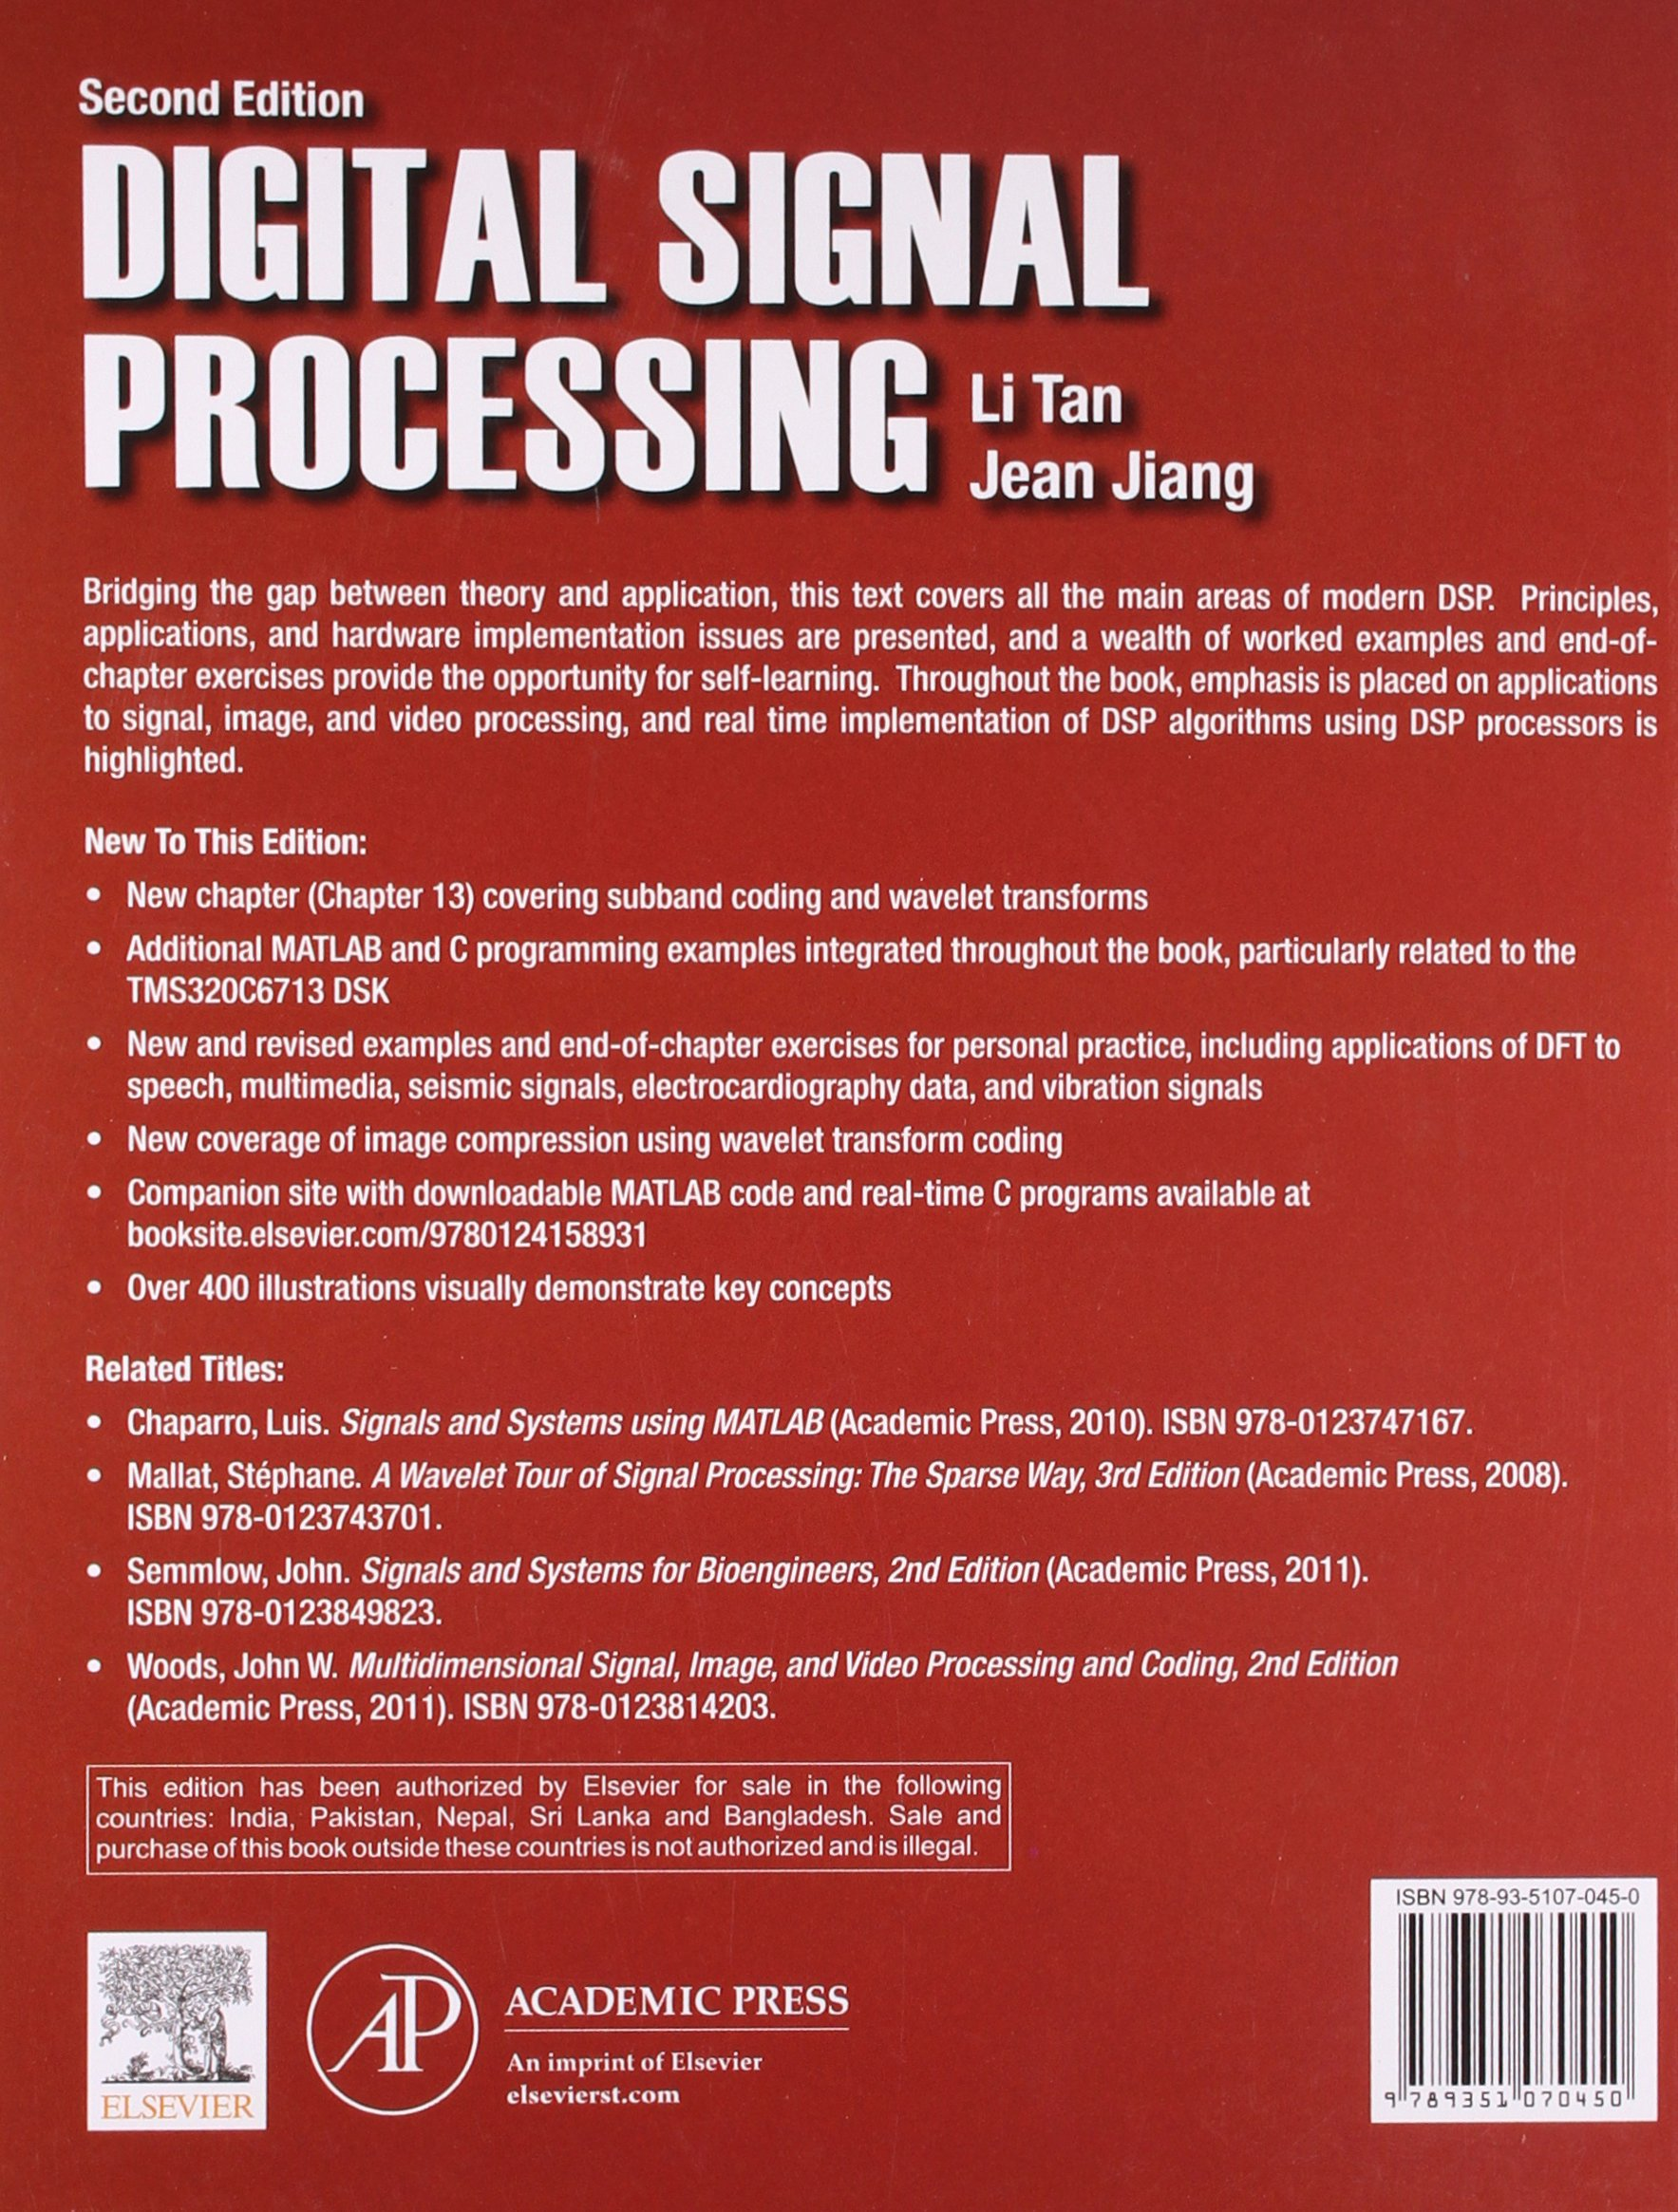 Digital signal processing fundamentals and applications jean jiang digital signal processing fundamentals and applications jean jiang li tan 9789351070450 amazon books fandeluxe Image collections